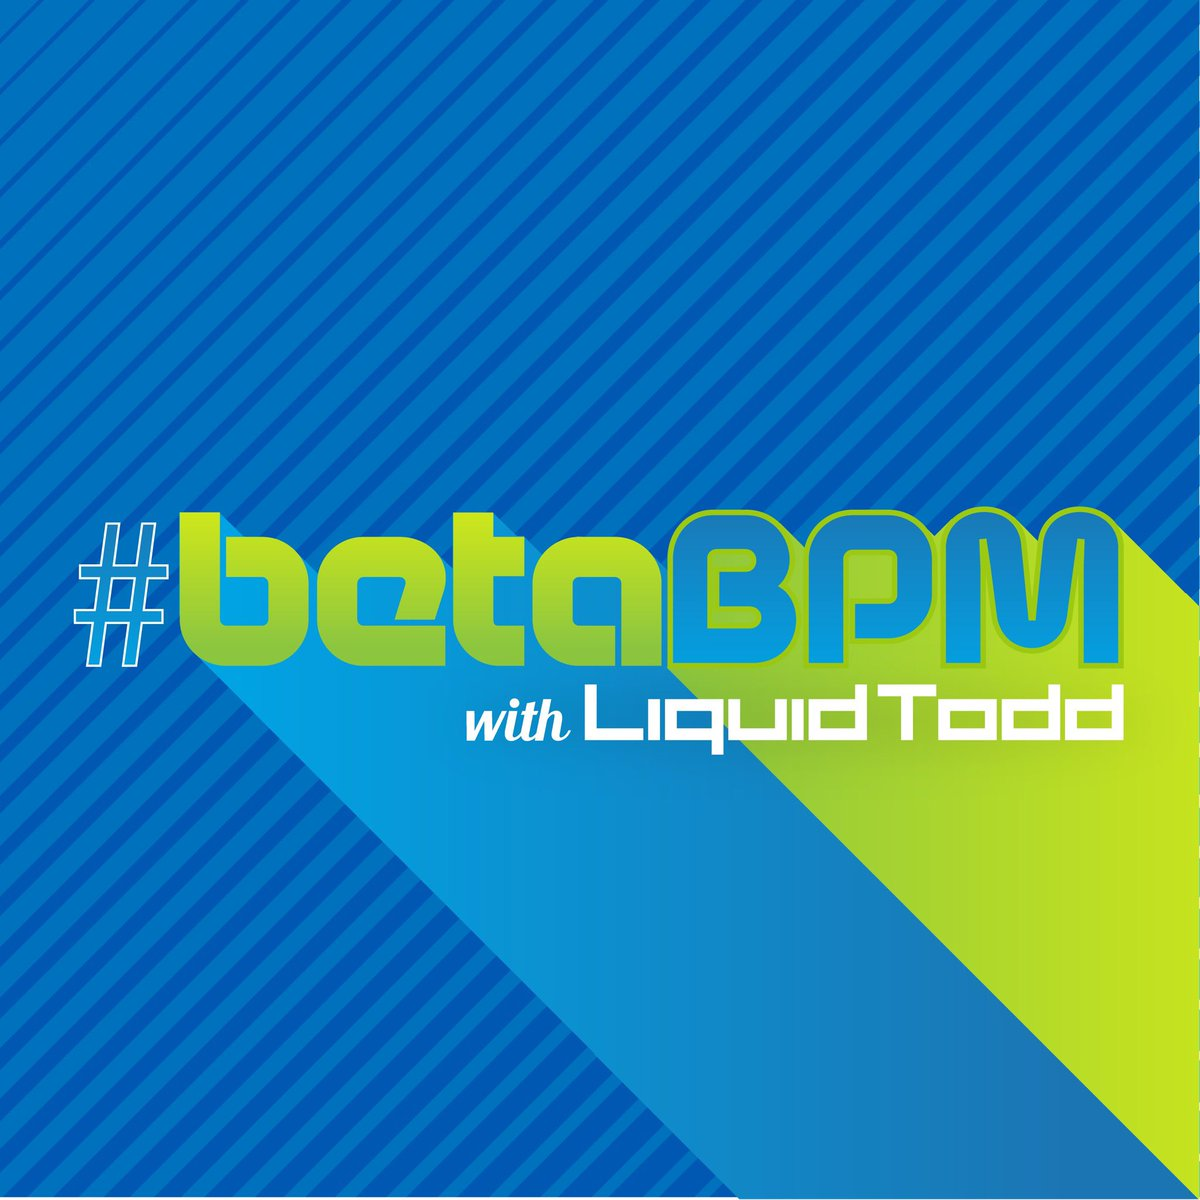 TONIGHT: #betaBPM with fantastic new debuts from @davidguetta + @MORTENofficial @chrislake @FerryCorsten @nickyromero @ectwins +more! 7pmPT/10pmET Tuesdays on @sxmElectro ch.51